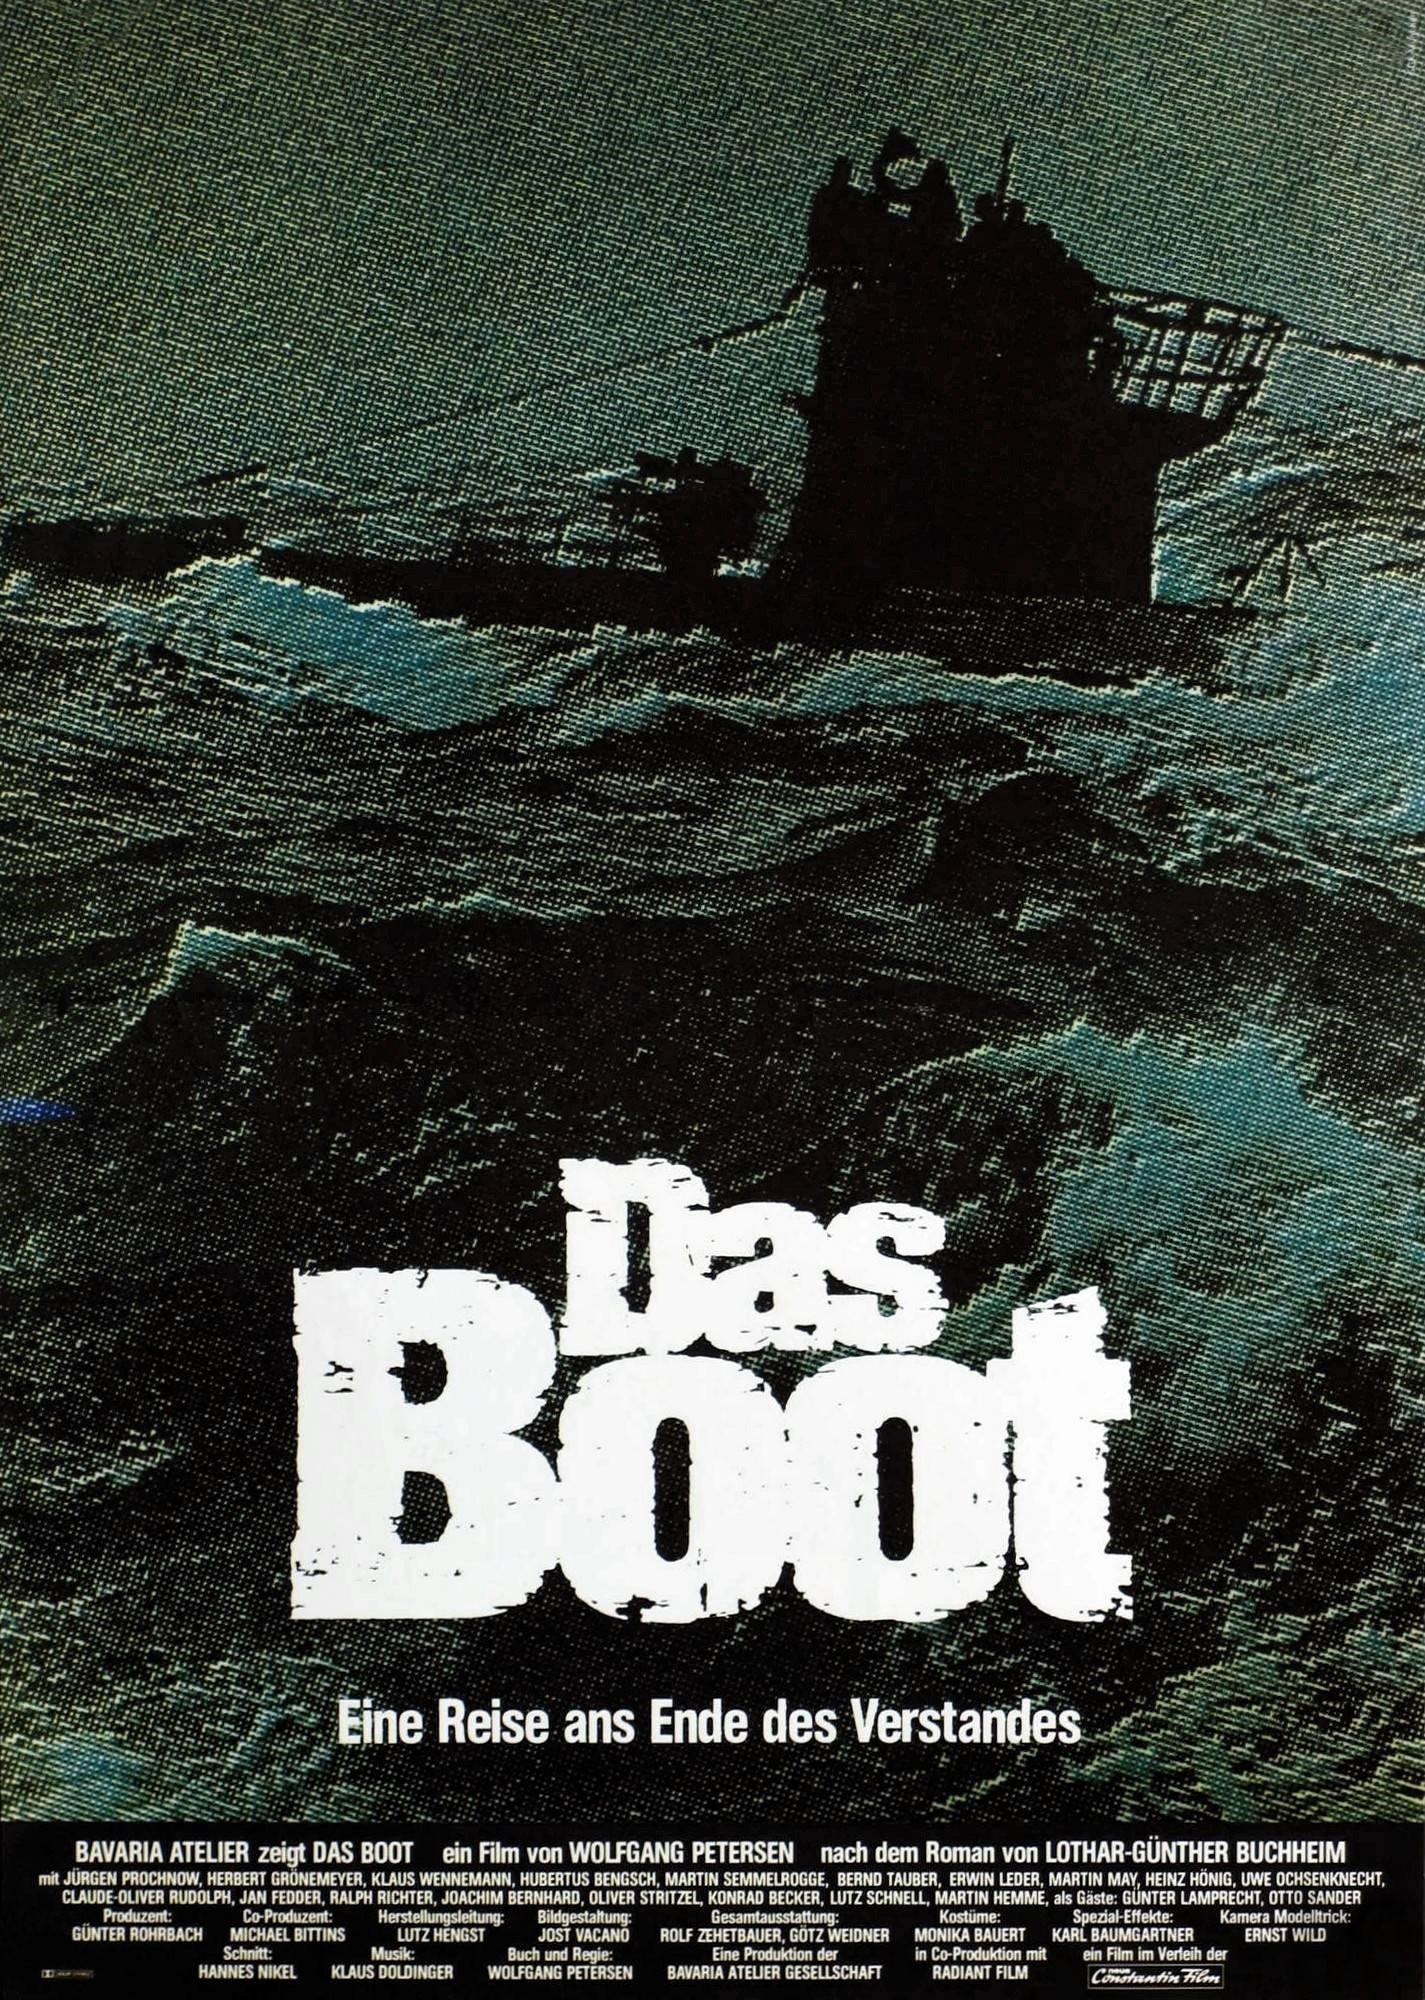 Das Boot- Director's Cut (1981) - Directed by: Wolfgang PetersenStarring: Jurgen Prochnow, Herbert Gronemeyer, Klaus WennemannRated: R for Some War Violence and Brief LanguageRunning Time: 3 h 28 mTMM Score: 5 stars out of 5STRENGTHS: Direction, Story, Cinematography, AtmosphereWEAKNESSES: -